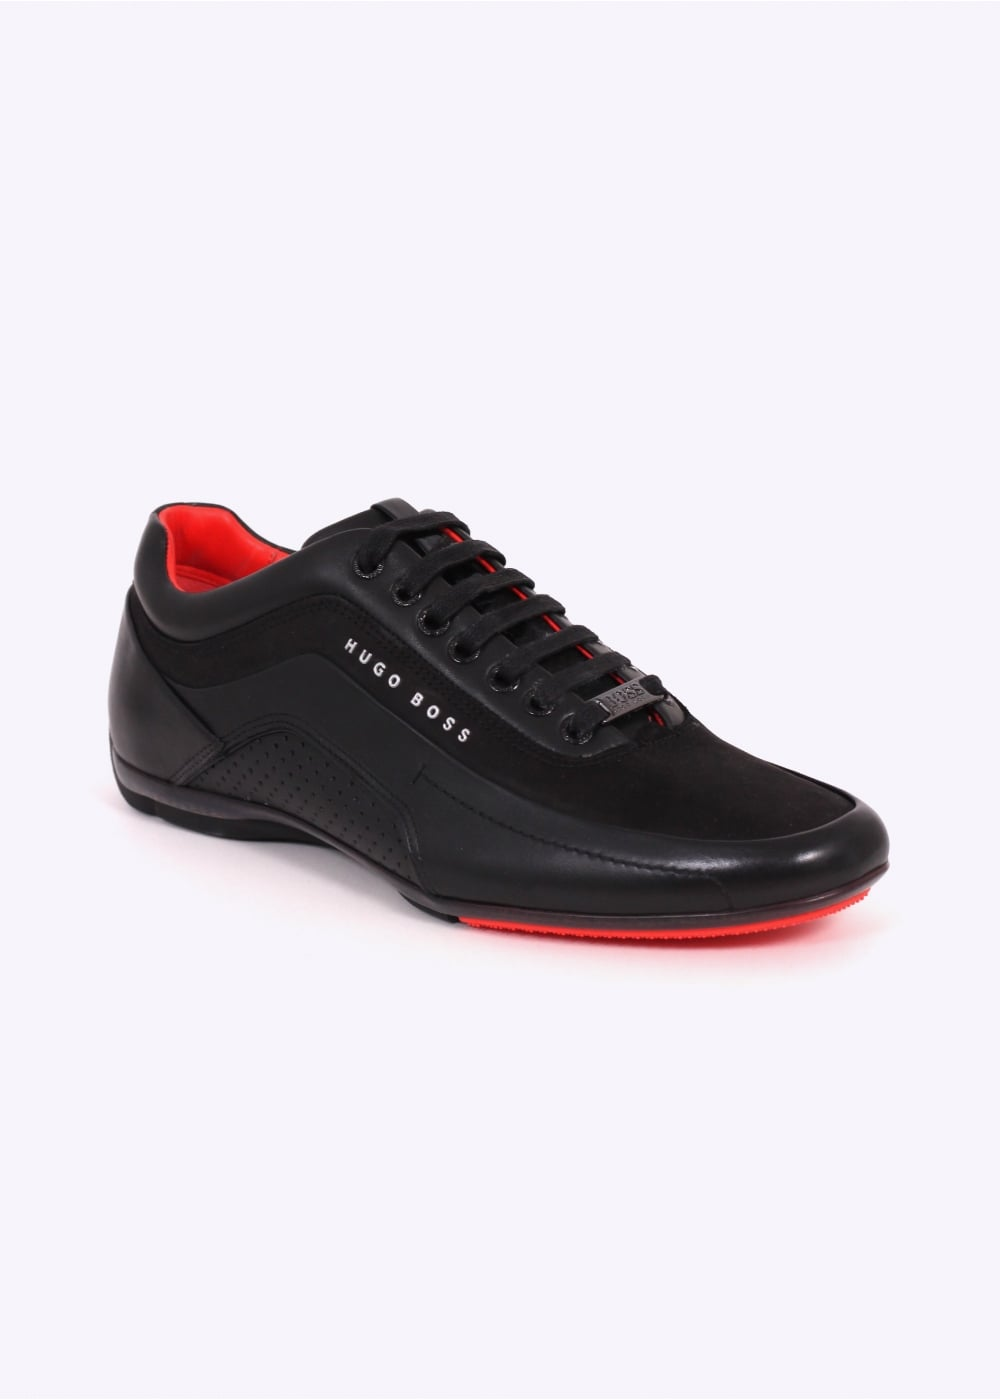 hugo boss footwear hb racing trainers black hugo boss footwear from triads uk. Black Bedroom Furniture Sets. Home Design Ideas